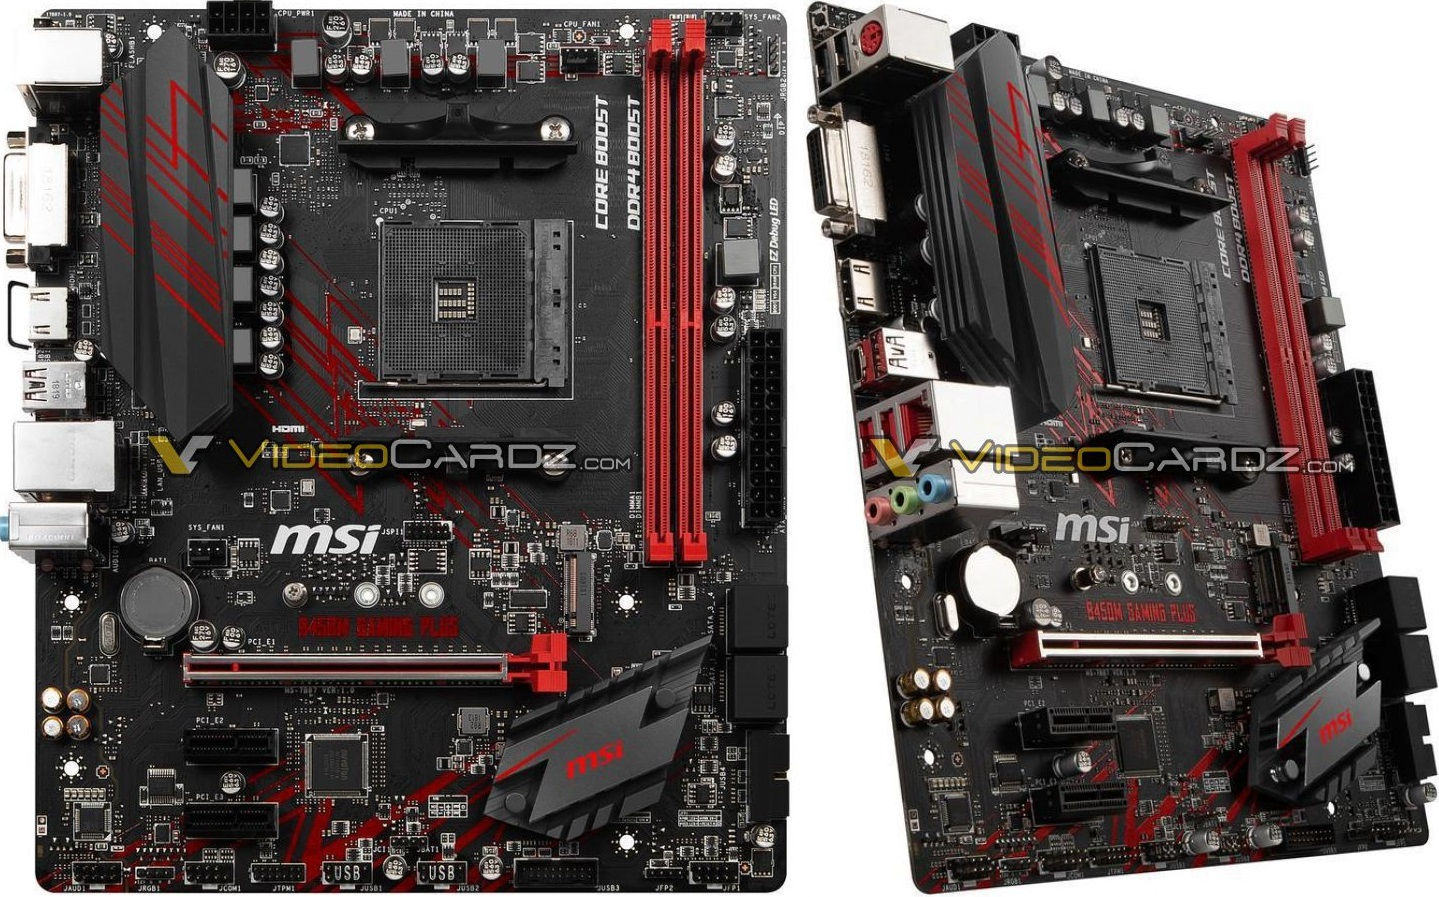 MSI B450 Gaming Pro Carbon AC, B450/M/I Gaming Plus, B450M Bazooka y